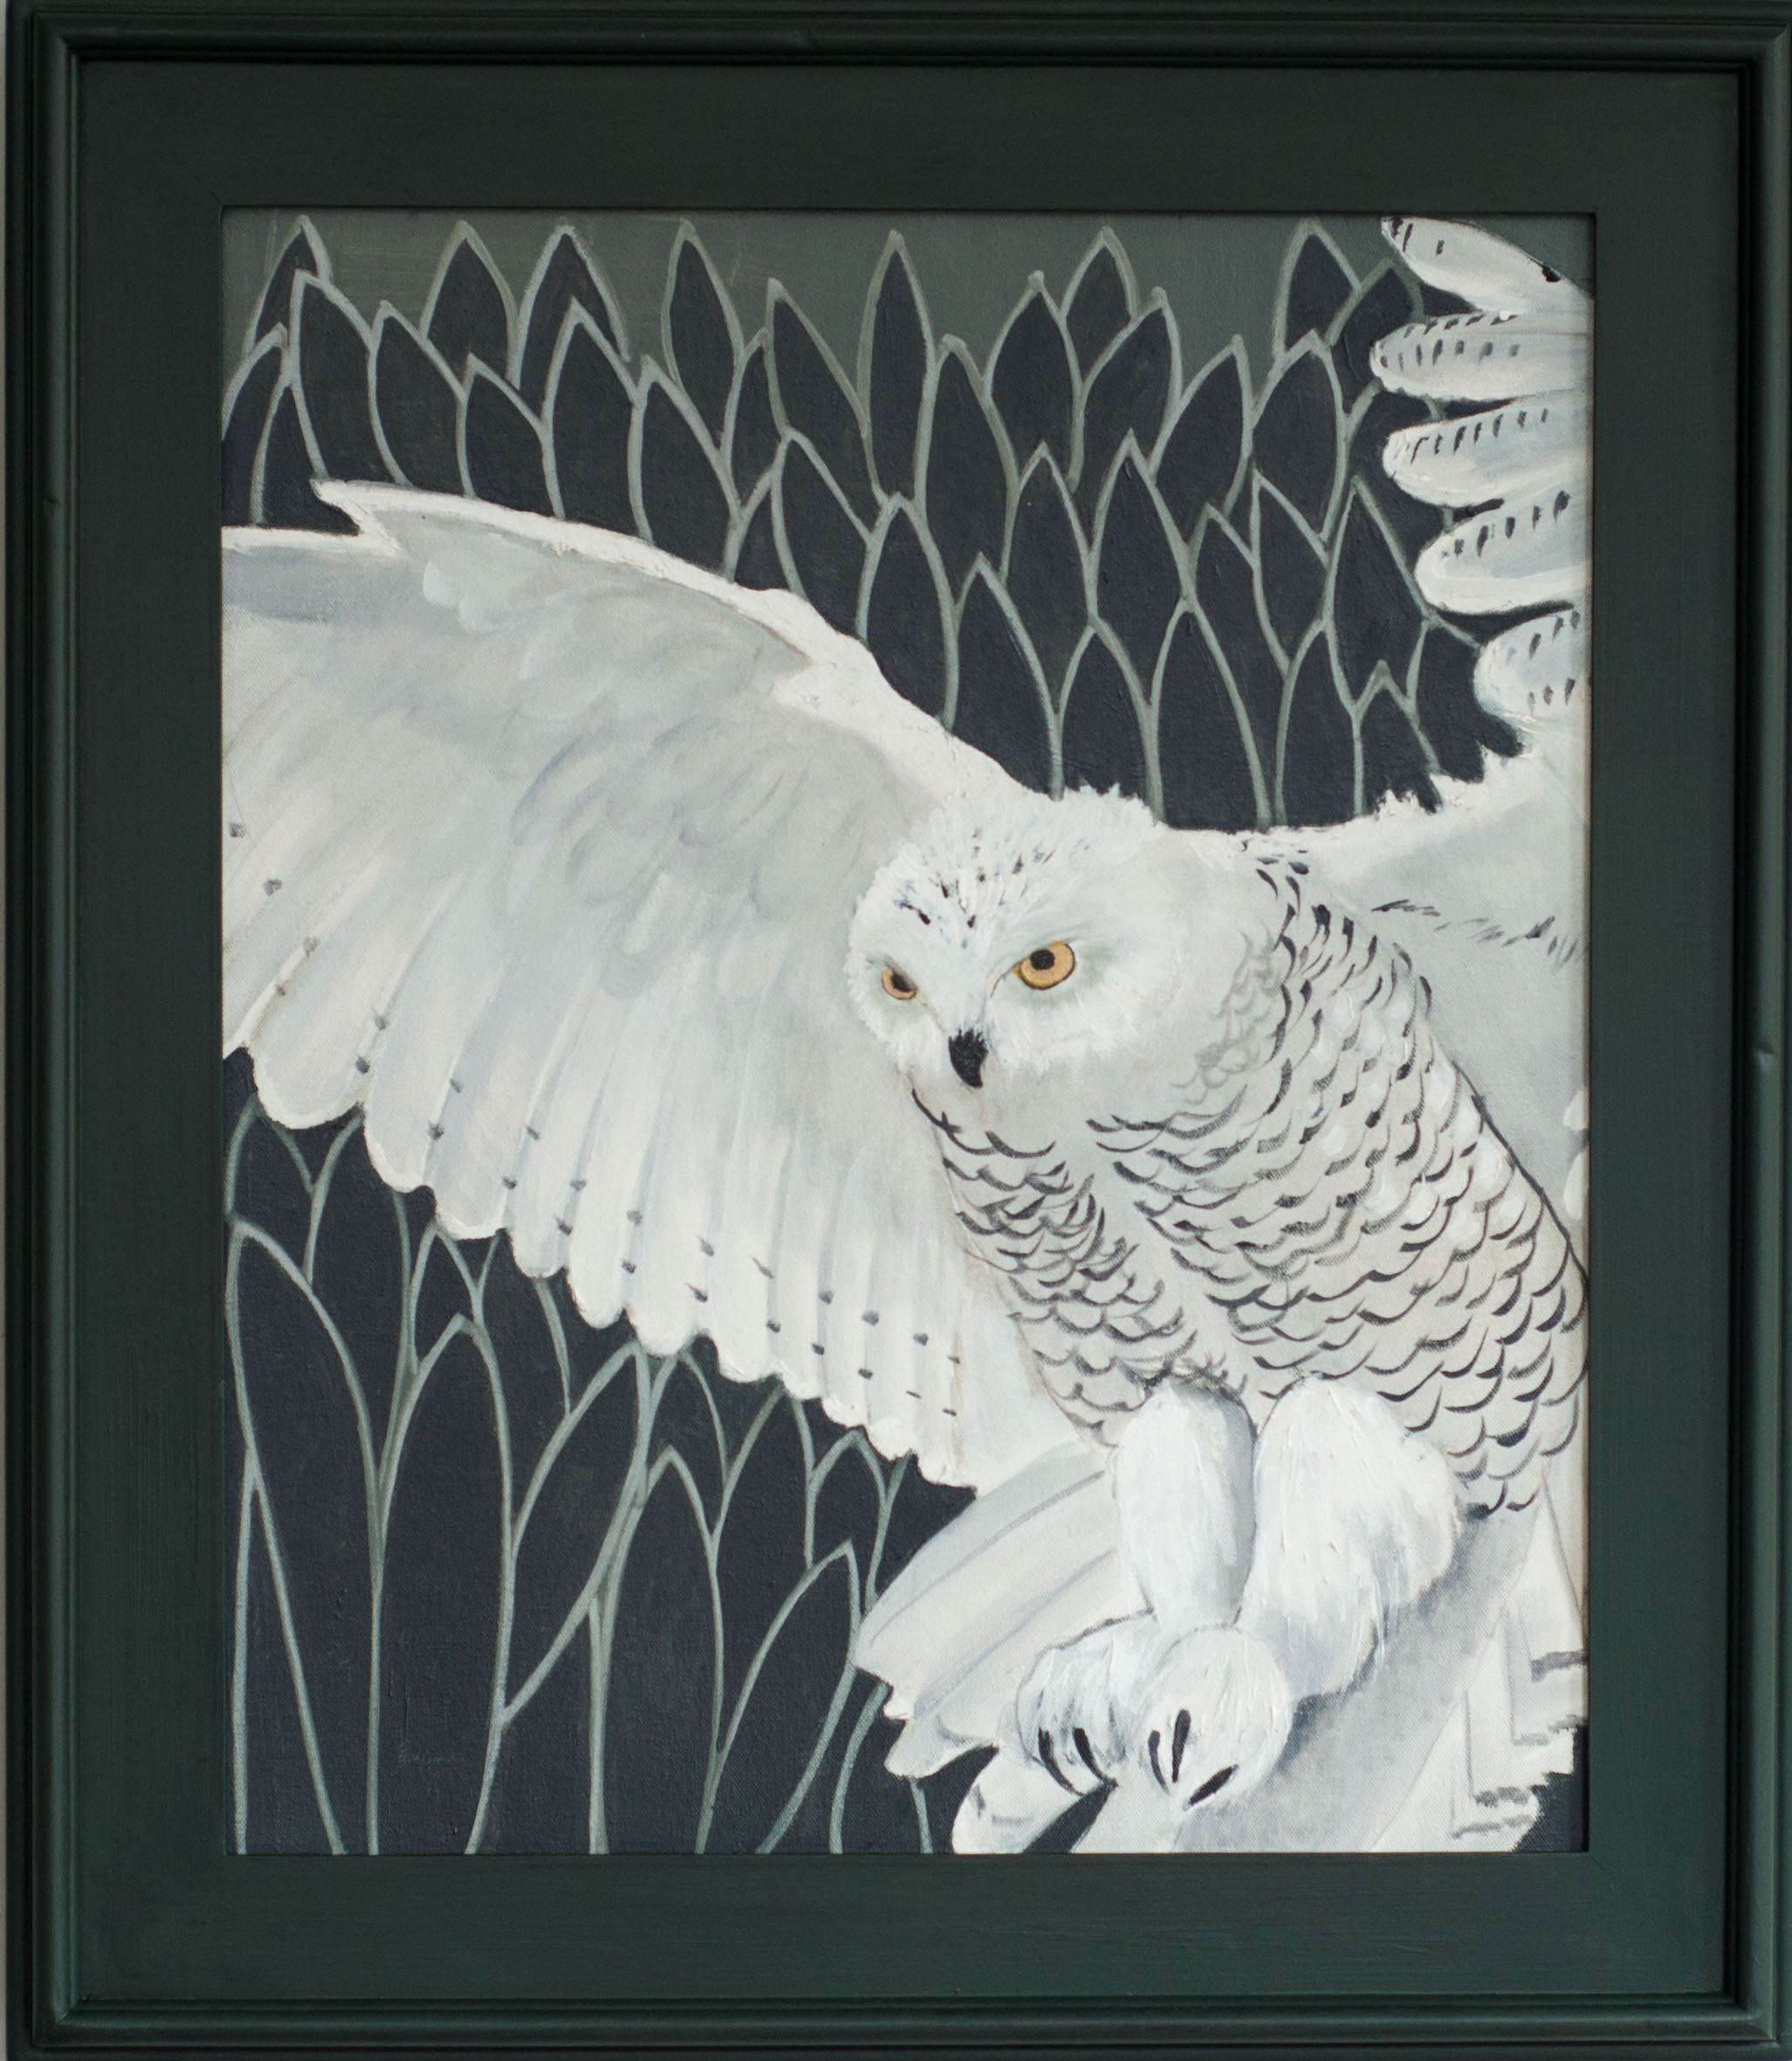 Snowy Owl In Flight - 30x26 (framed) - Oil on canvas - 2015 web